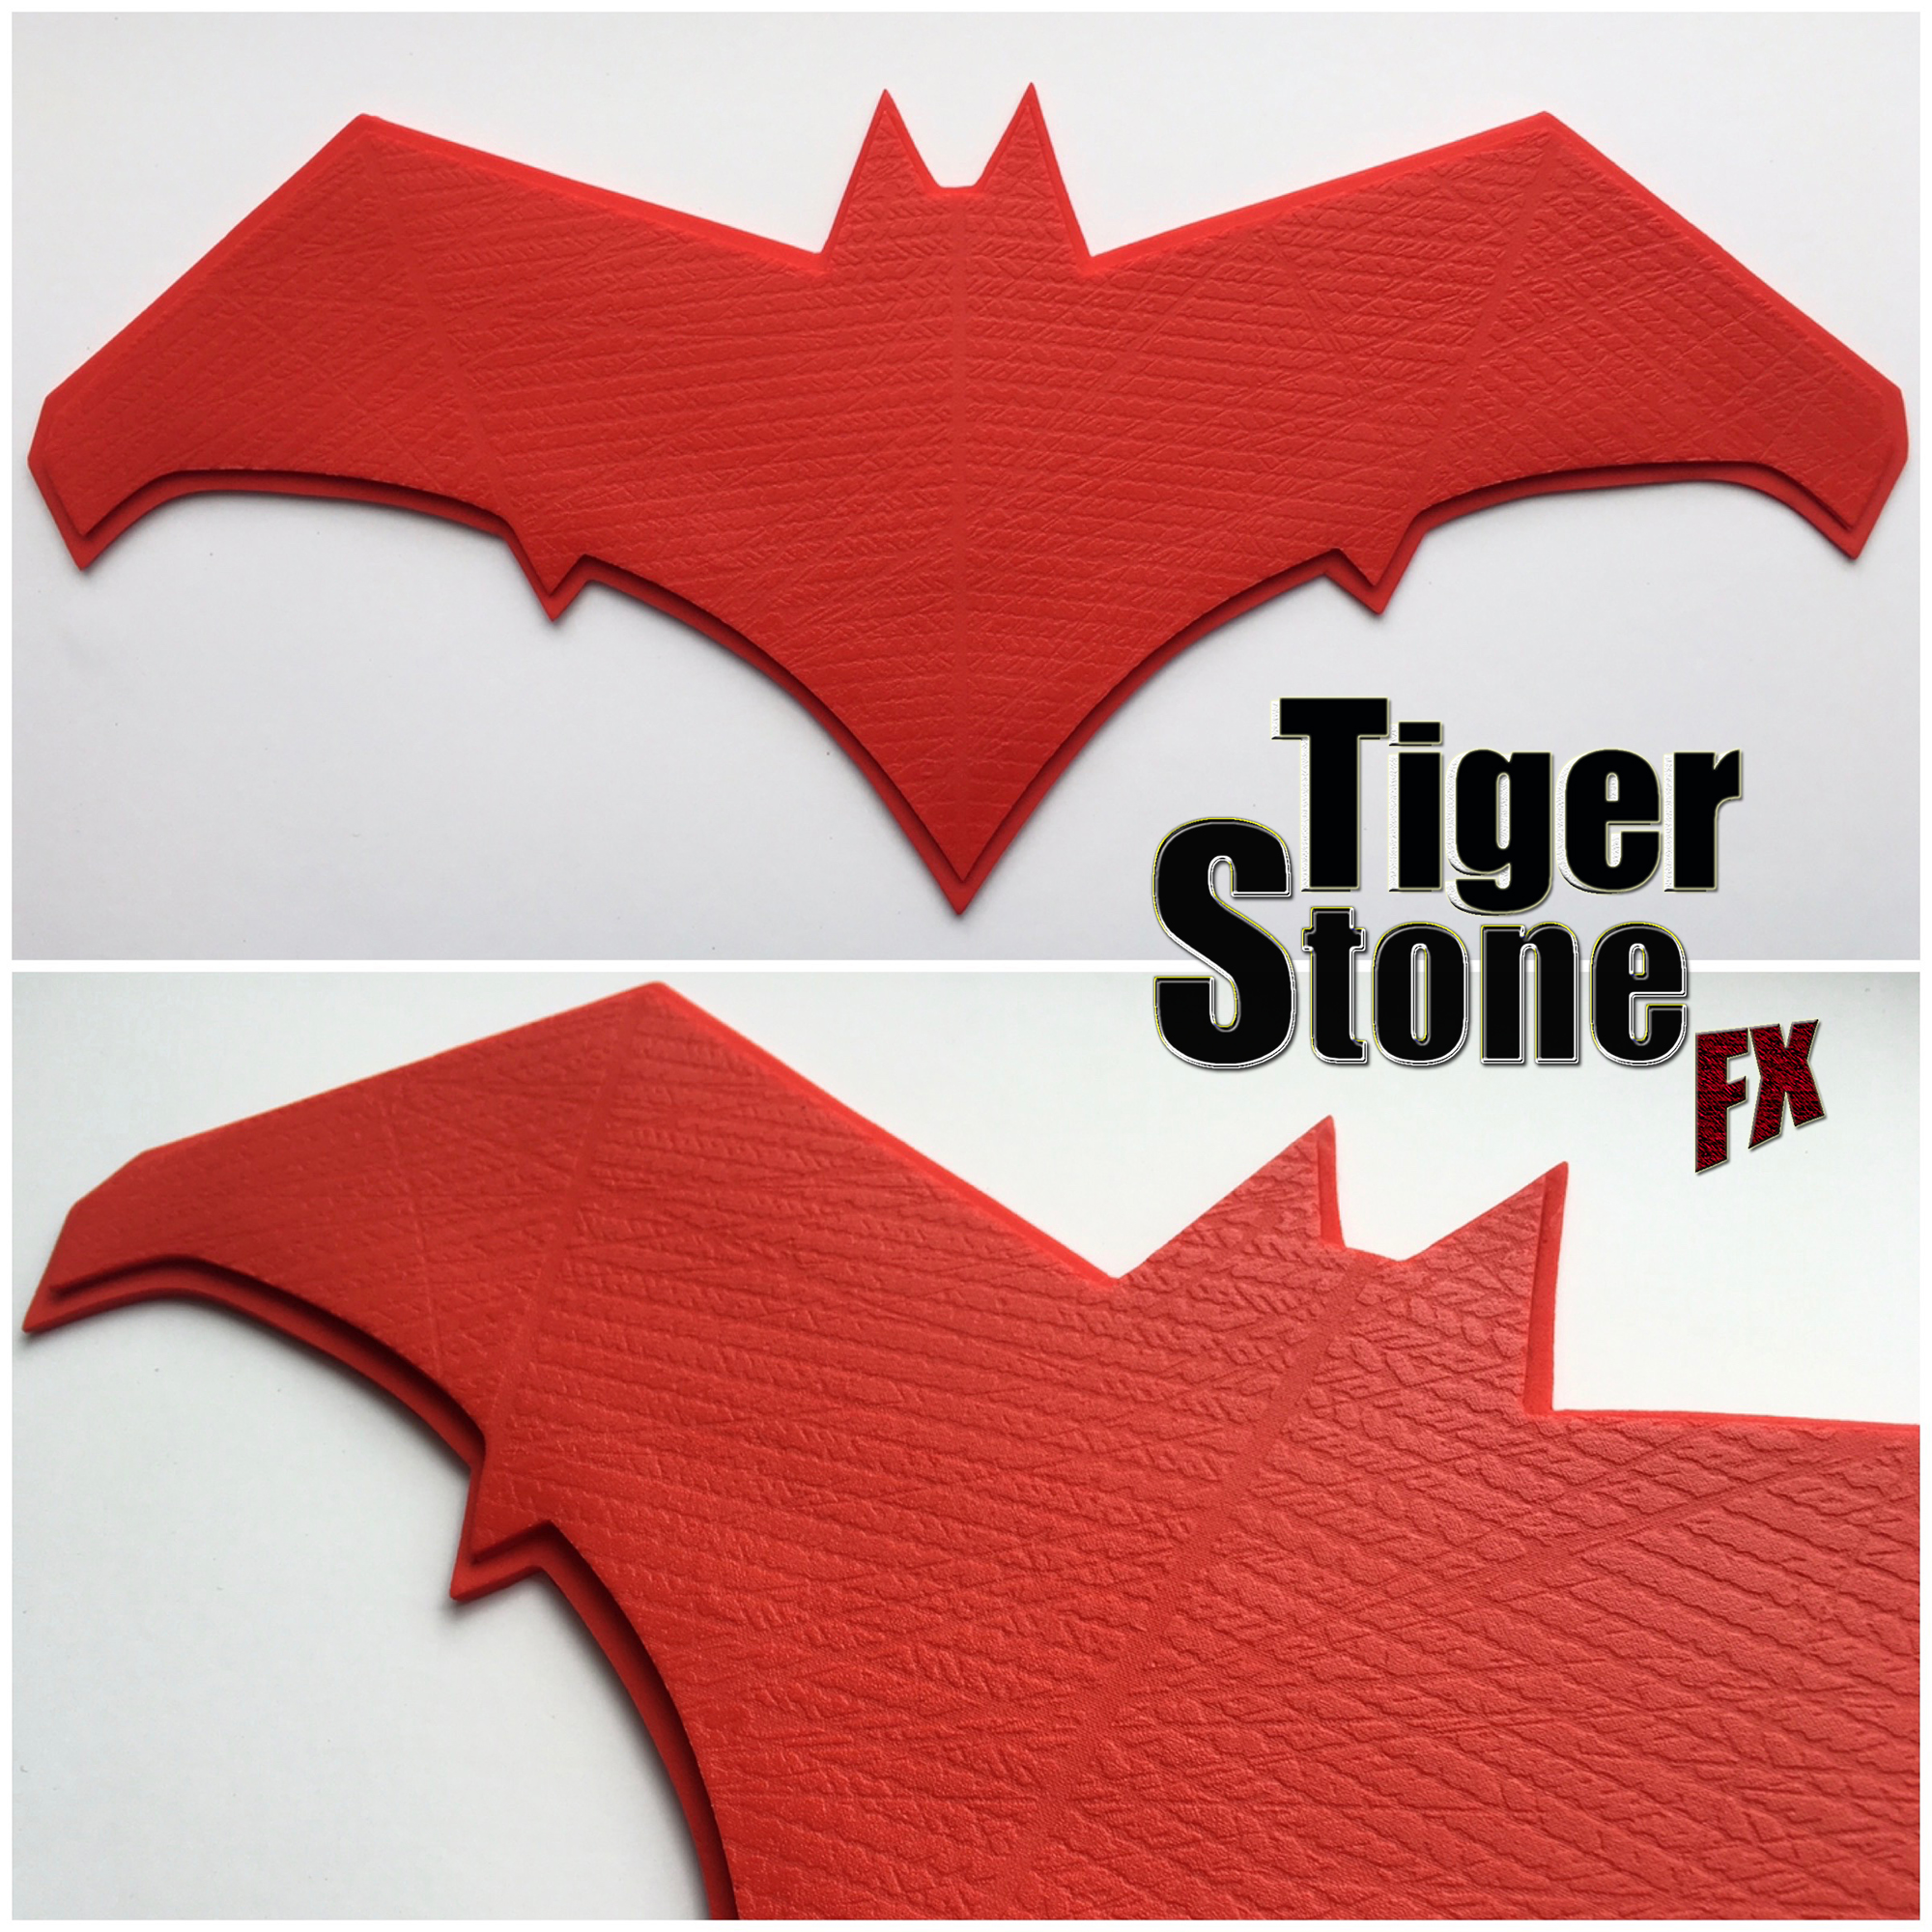 Dawn Of Justice Inspired Red Hood Chest Emblem Tiger Stone Fx